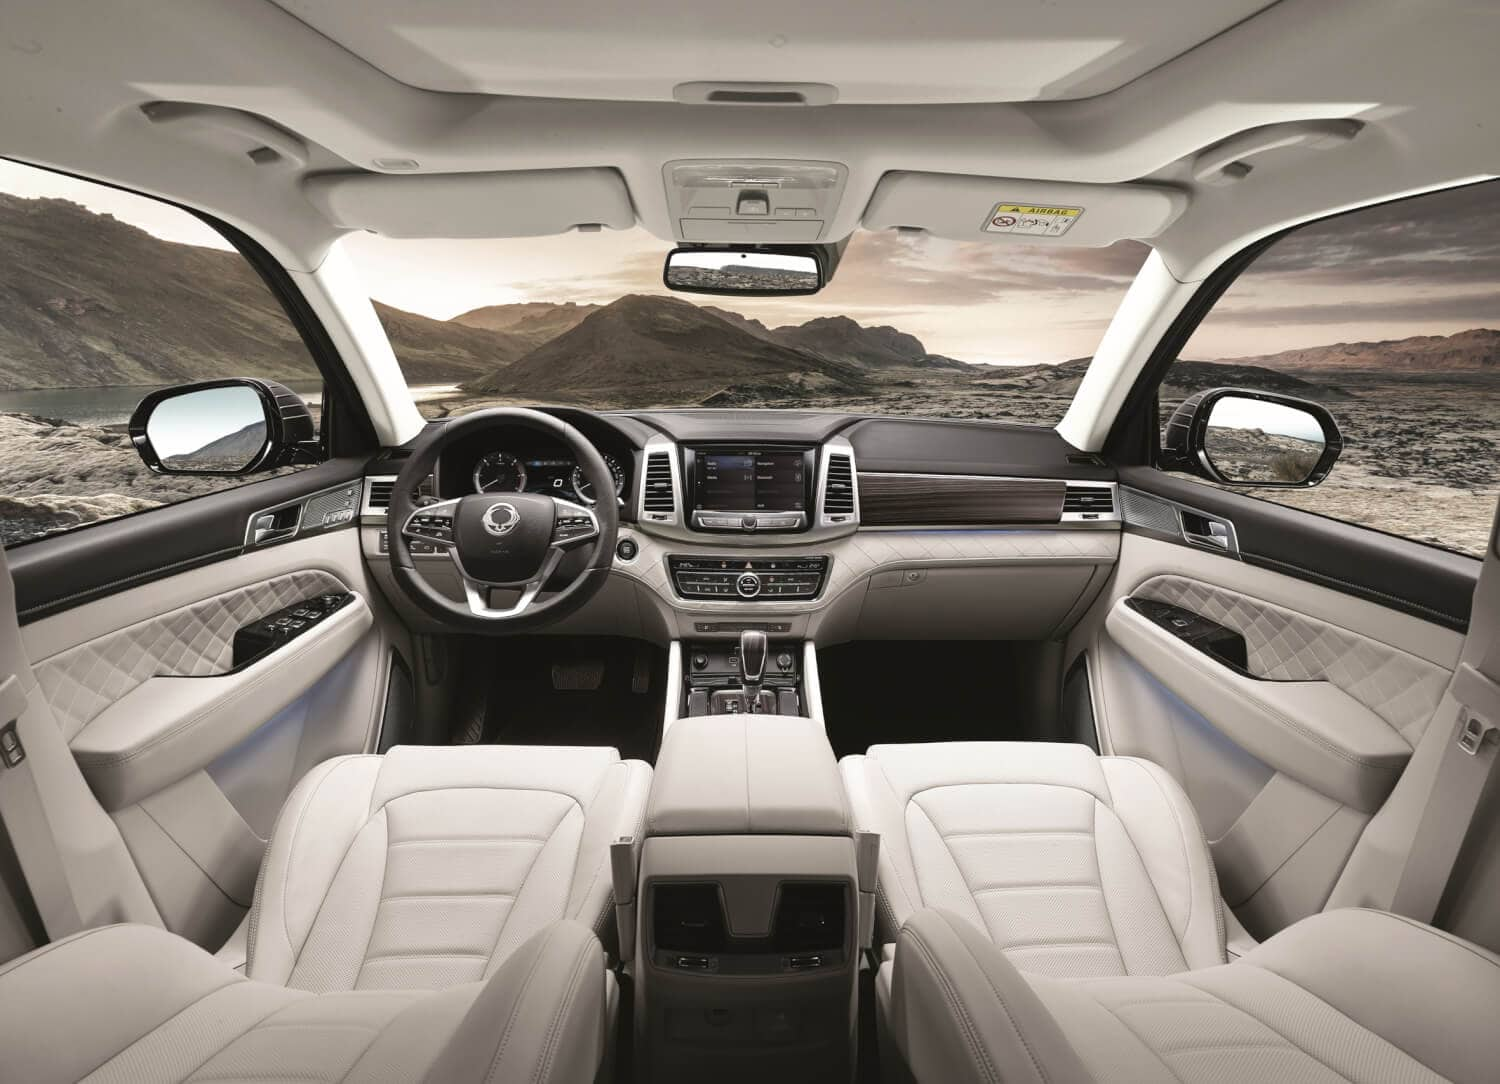 ssangyong rexton zeigt viel charakter autosprintch. Black Bedroom Furniture Sets. Home Design Ideas